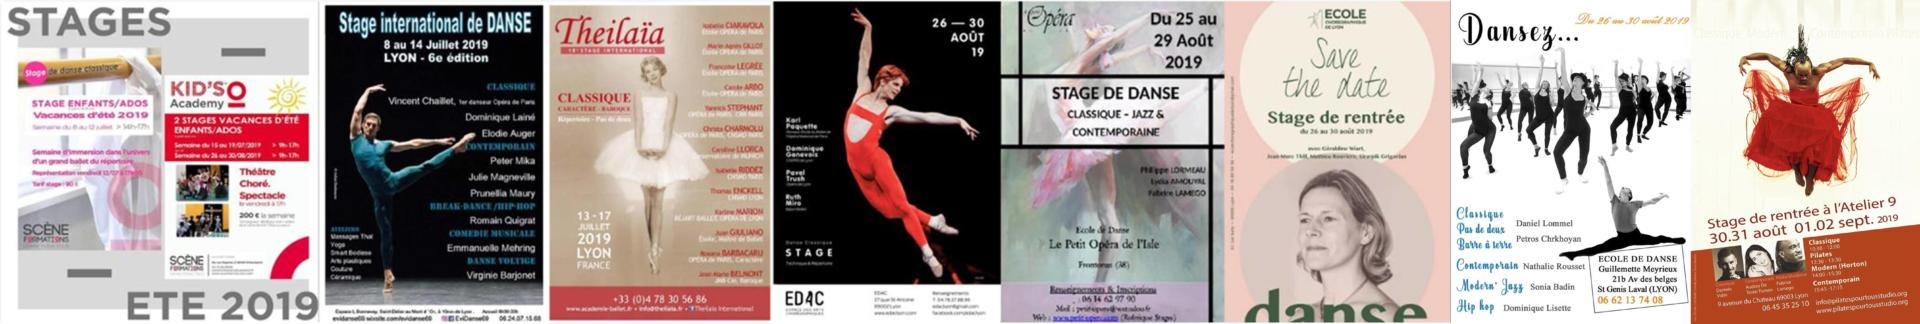 Stages de danse Lyon